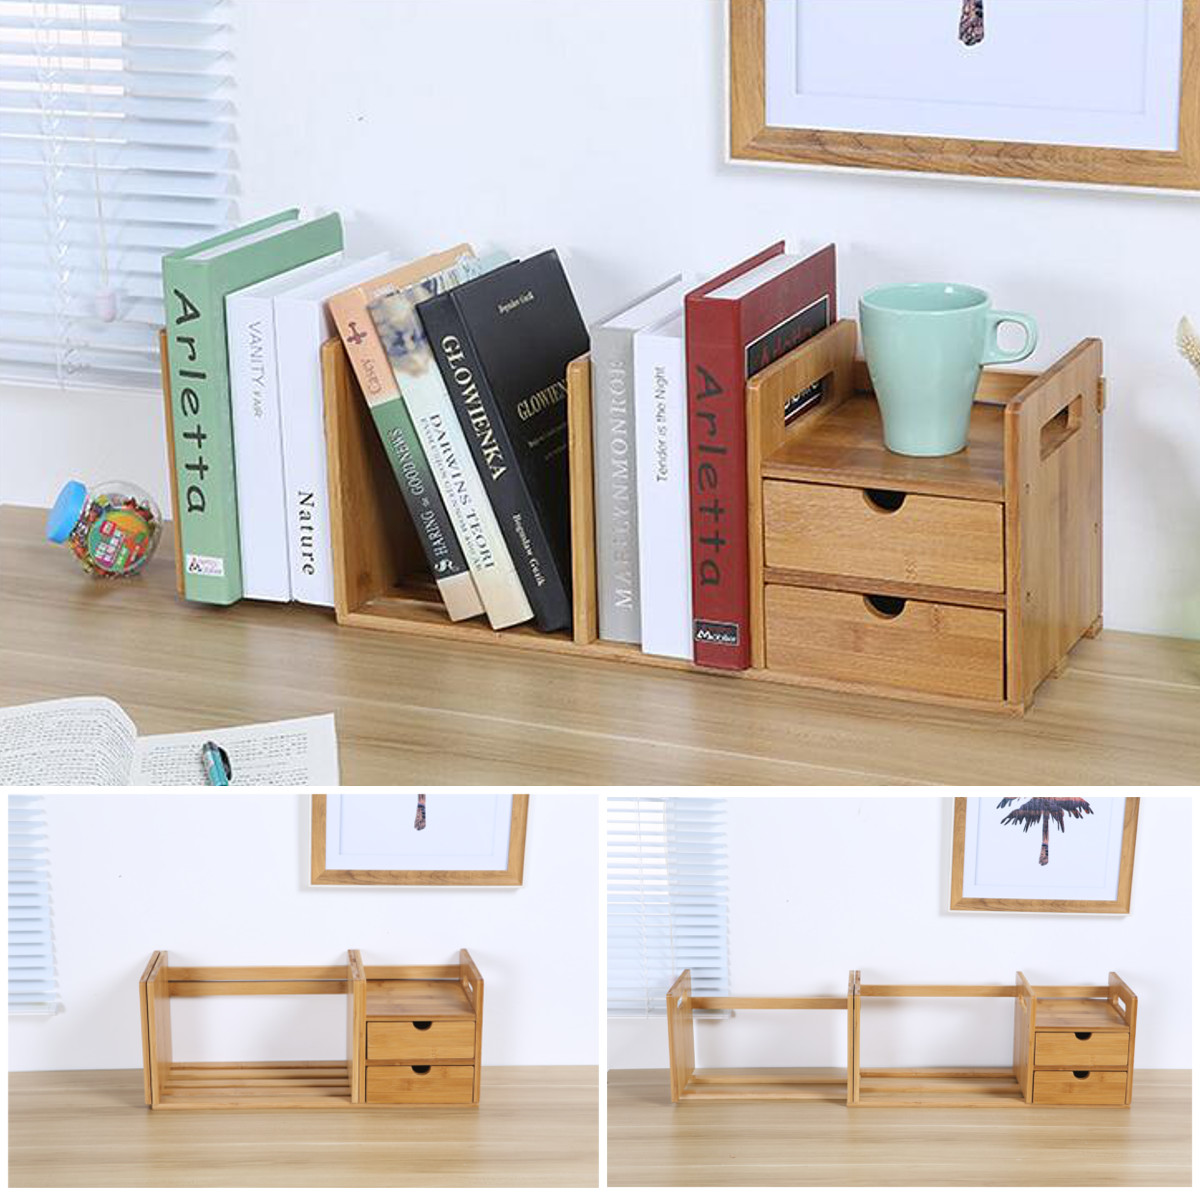 Bamboo Desktop Bookshelf Desk Organizer Extendable Storage With 2 Drawers Office School Book Holder